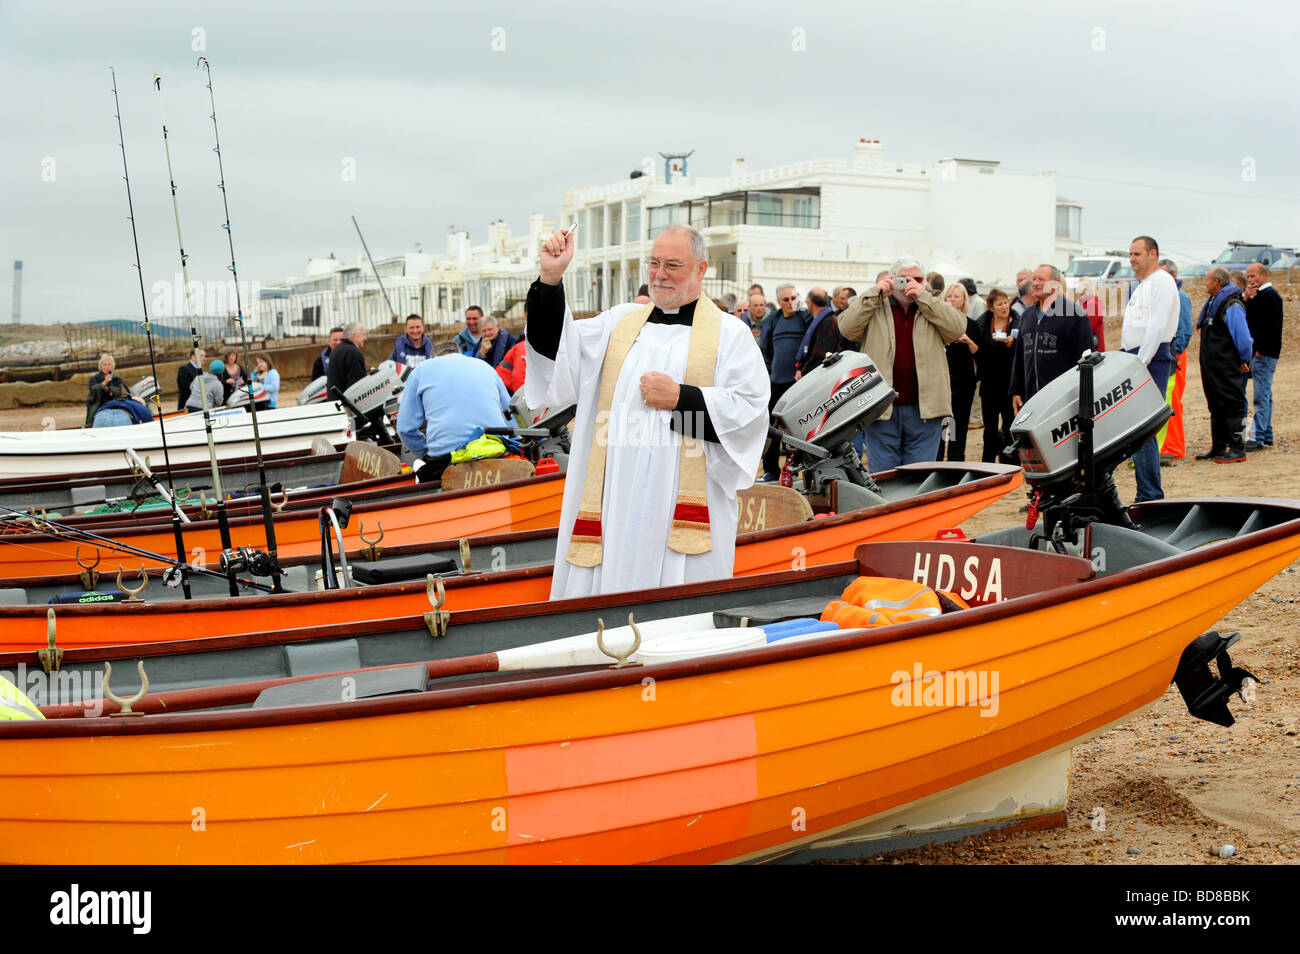 A vicar blesses fishing boats on Brighton beach before they go out - Stock Image